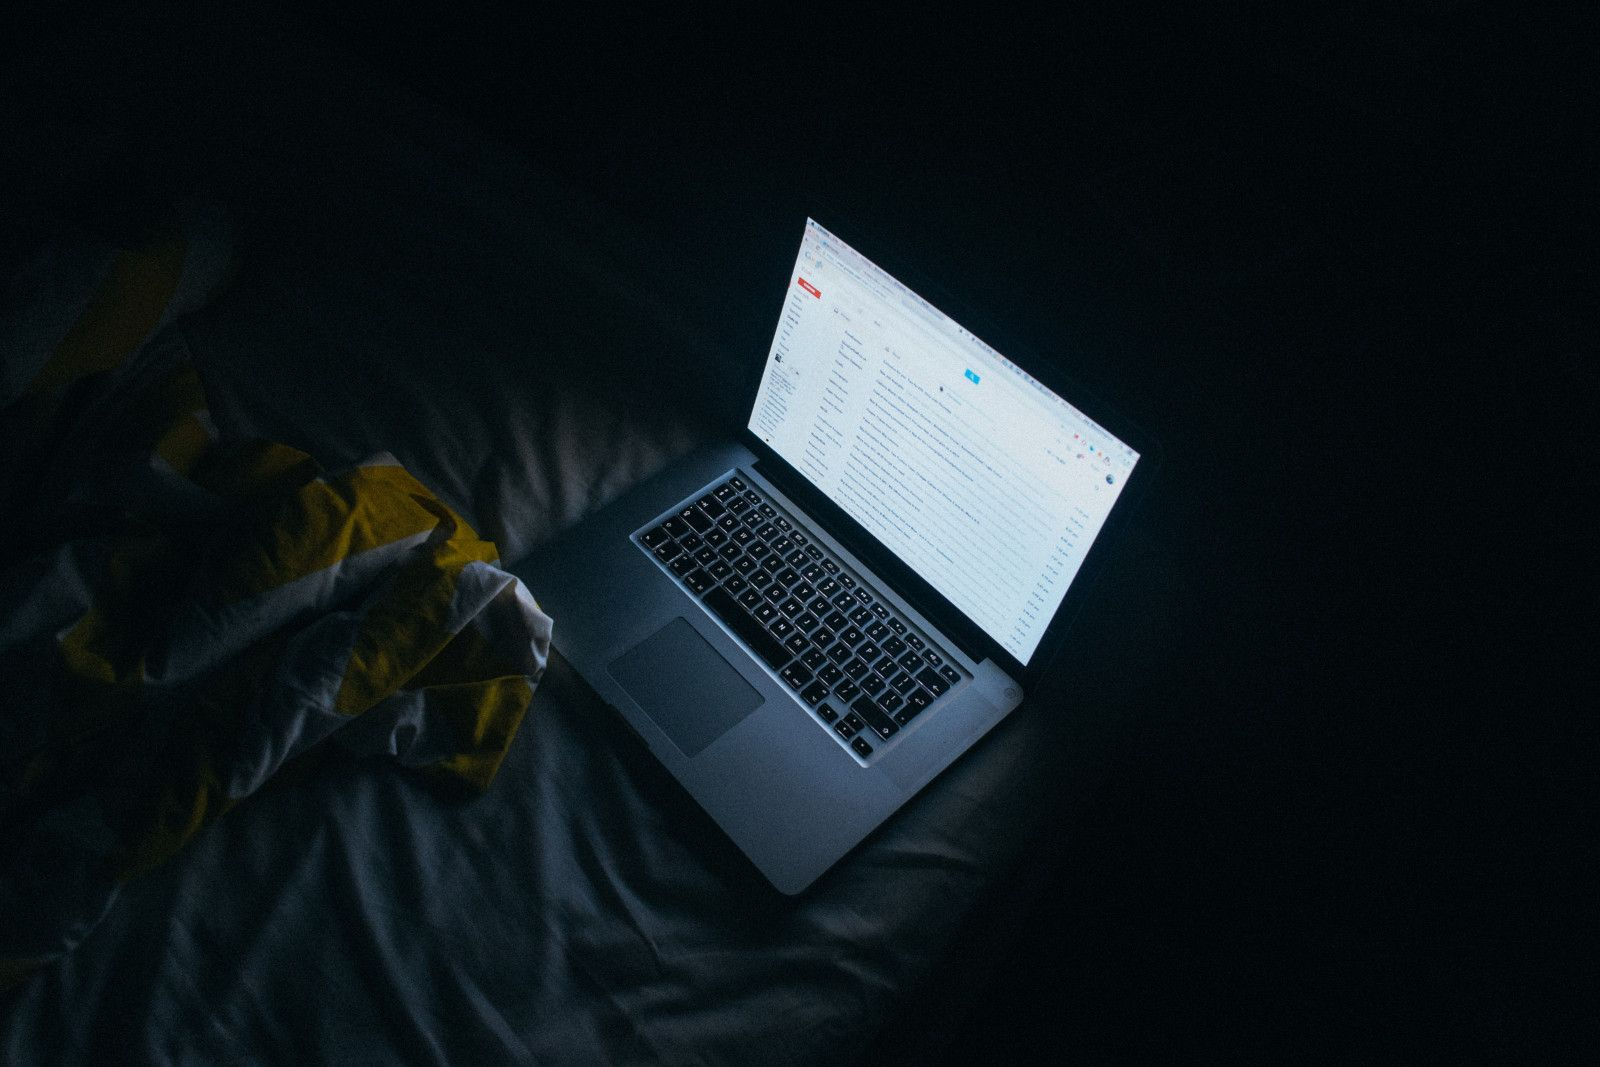 How to avoid sleep mode on your Mac